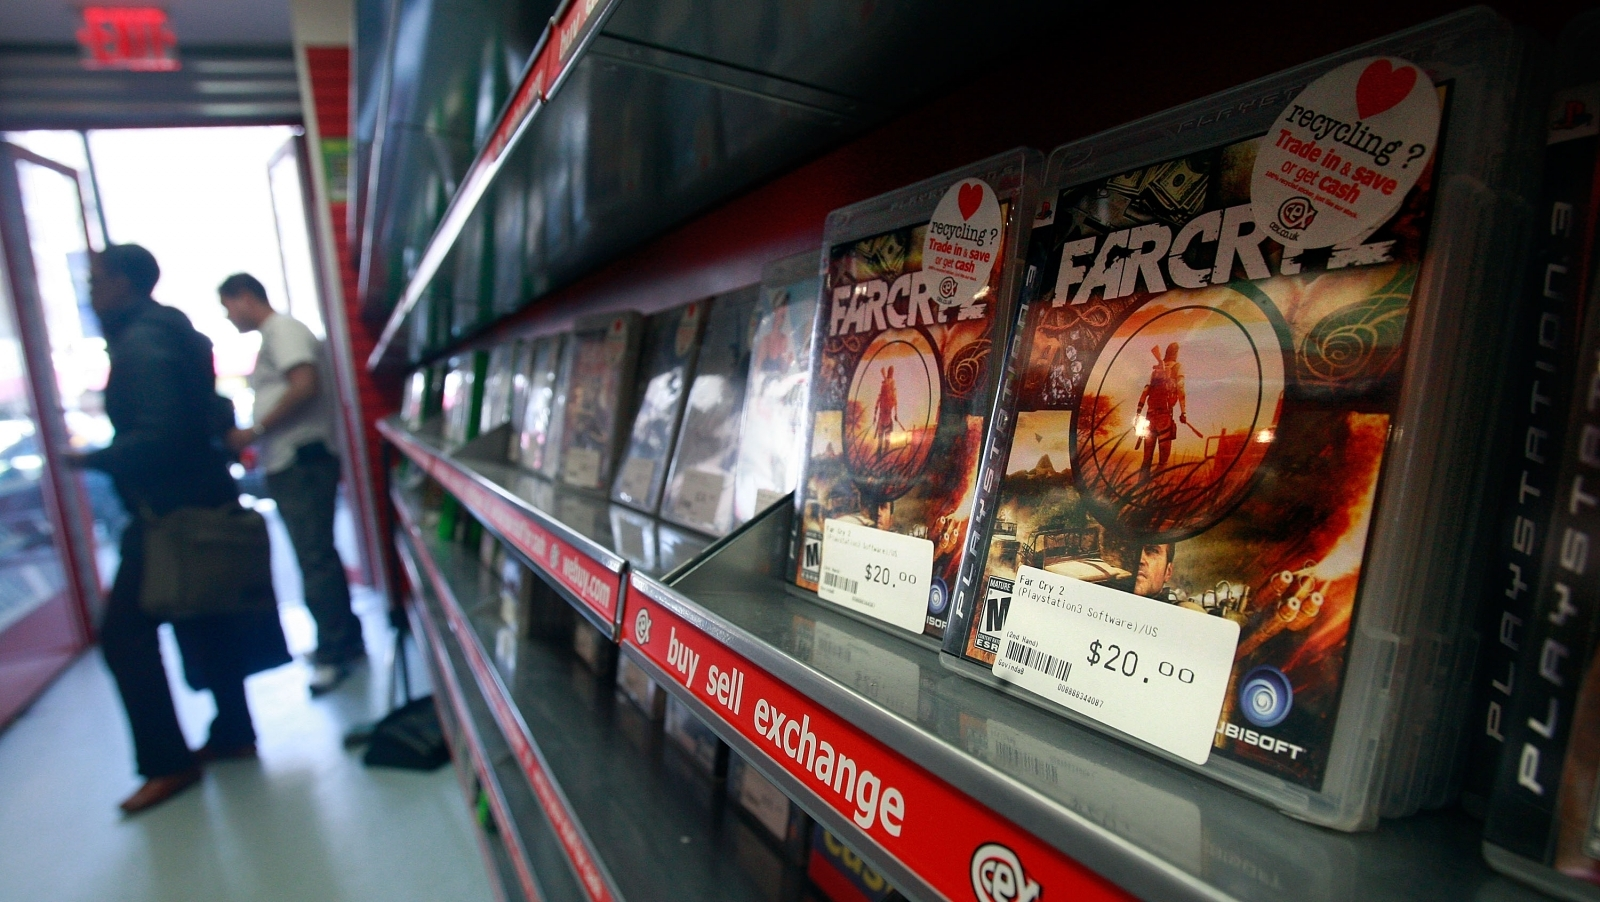 CEX suffers security breach that may affect up to two million customers